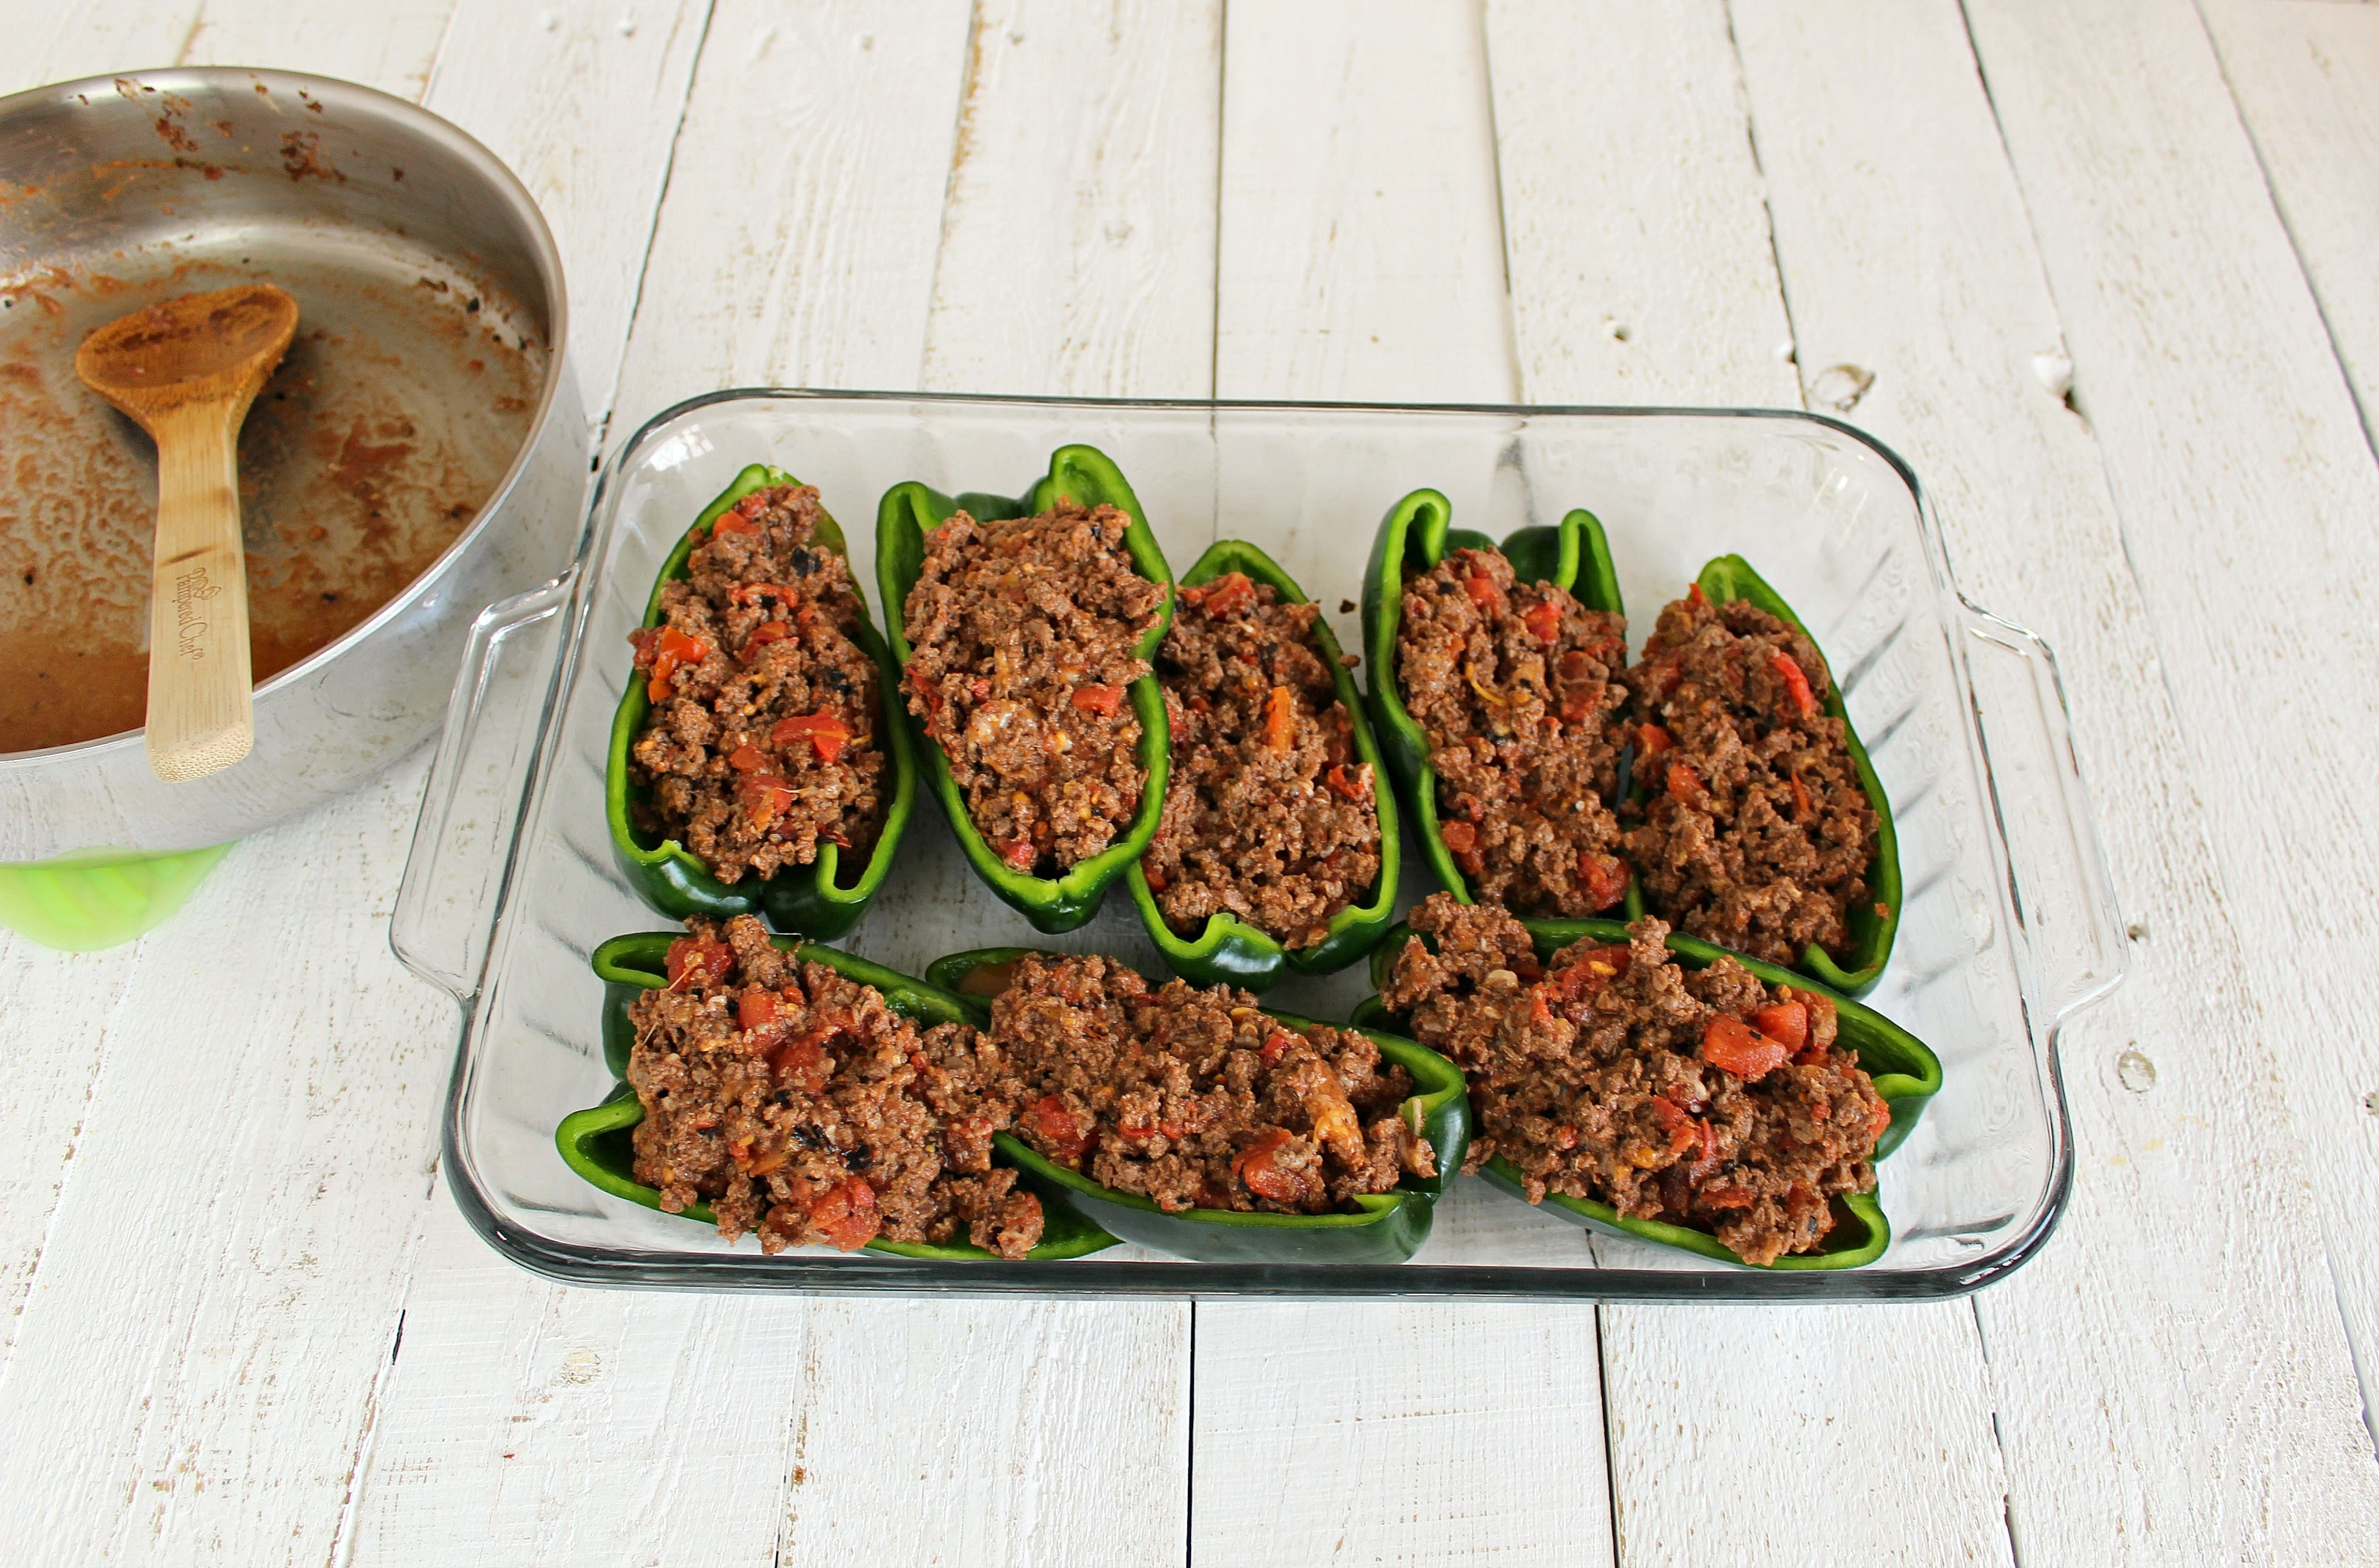 Stuffed Poblanos with Bell Pepper Salsa, Easy Stuffed Poblanos | Healthy Stuffed Poblanos | Food Made Simple | Kid Friendly Meals | Kids in the Kitchen | Dinner Recipe | Mexican Food Recipe